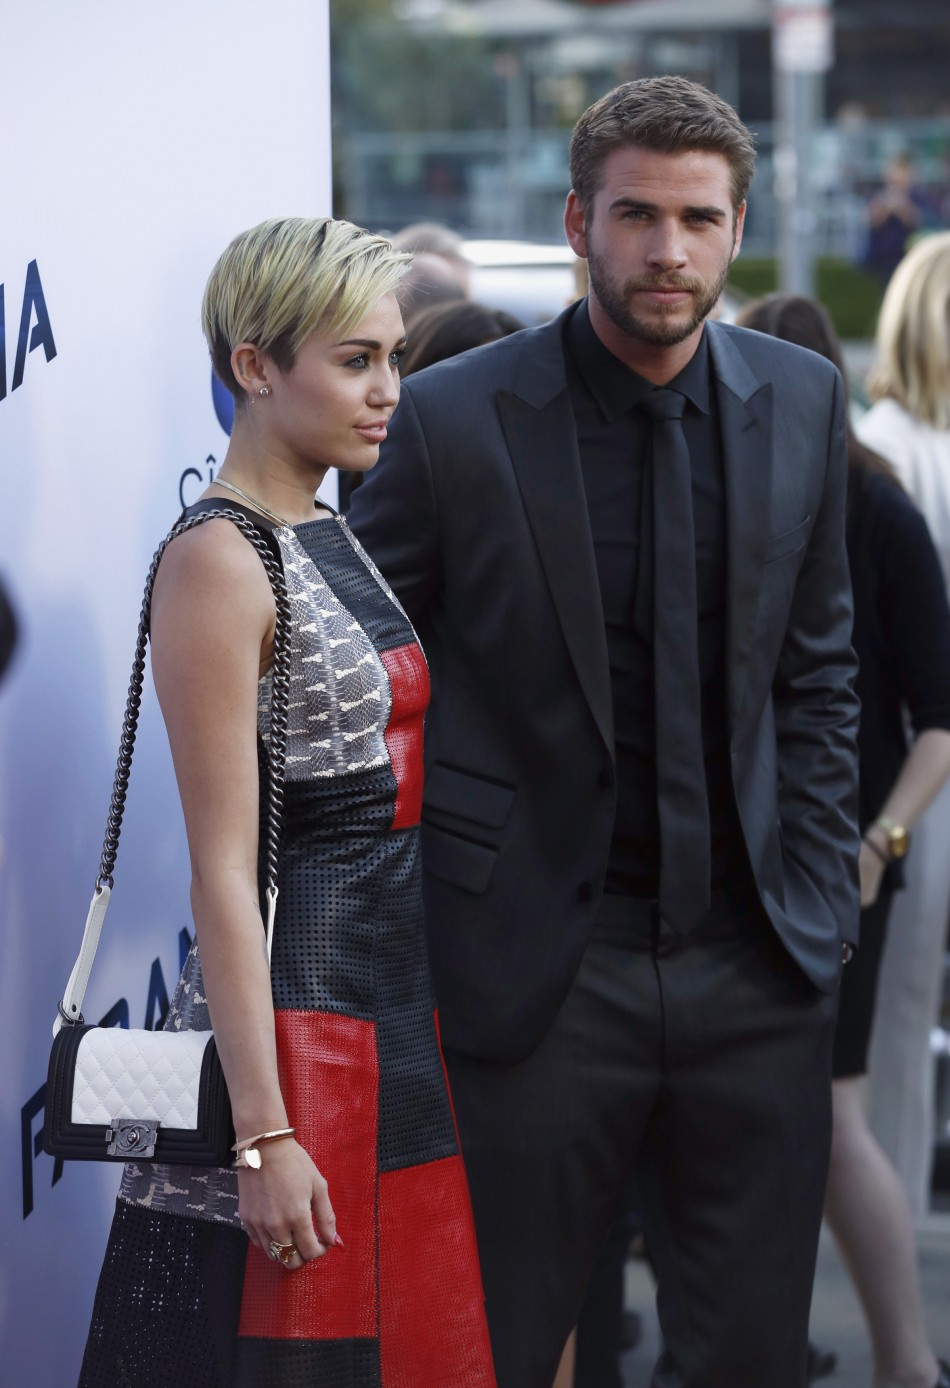 Paranoia Los Angeles Premiere Miley Cyrus And Liam Hemsworth Reunite On Red Carpet PHOTOS